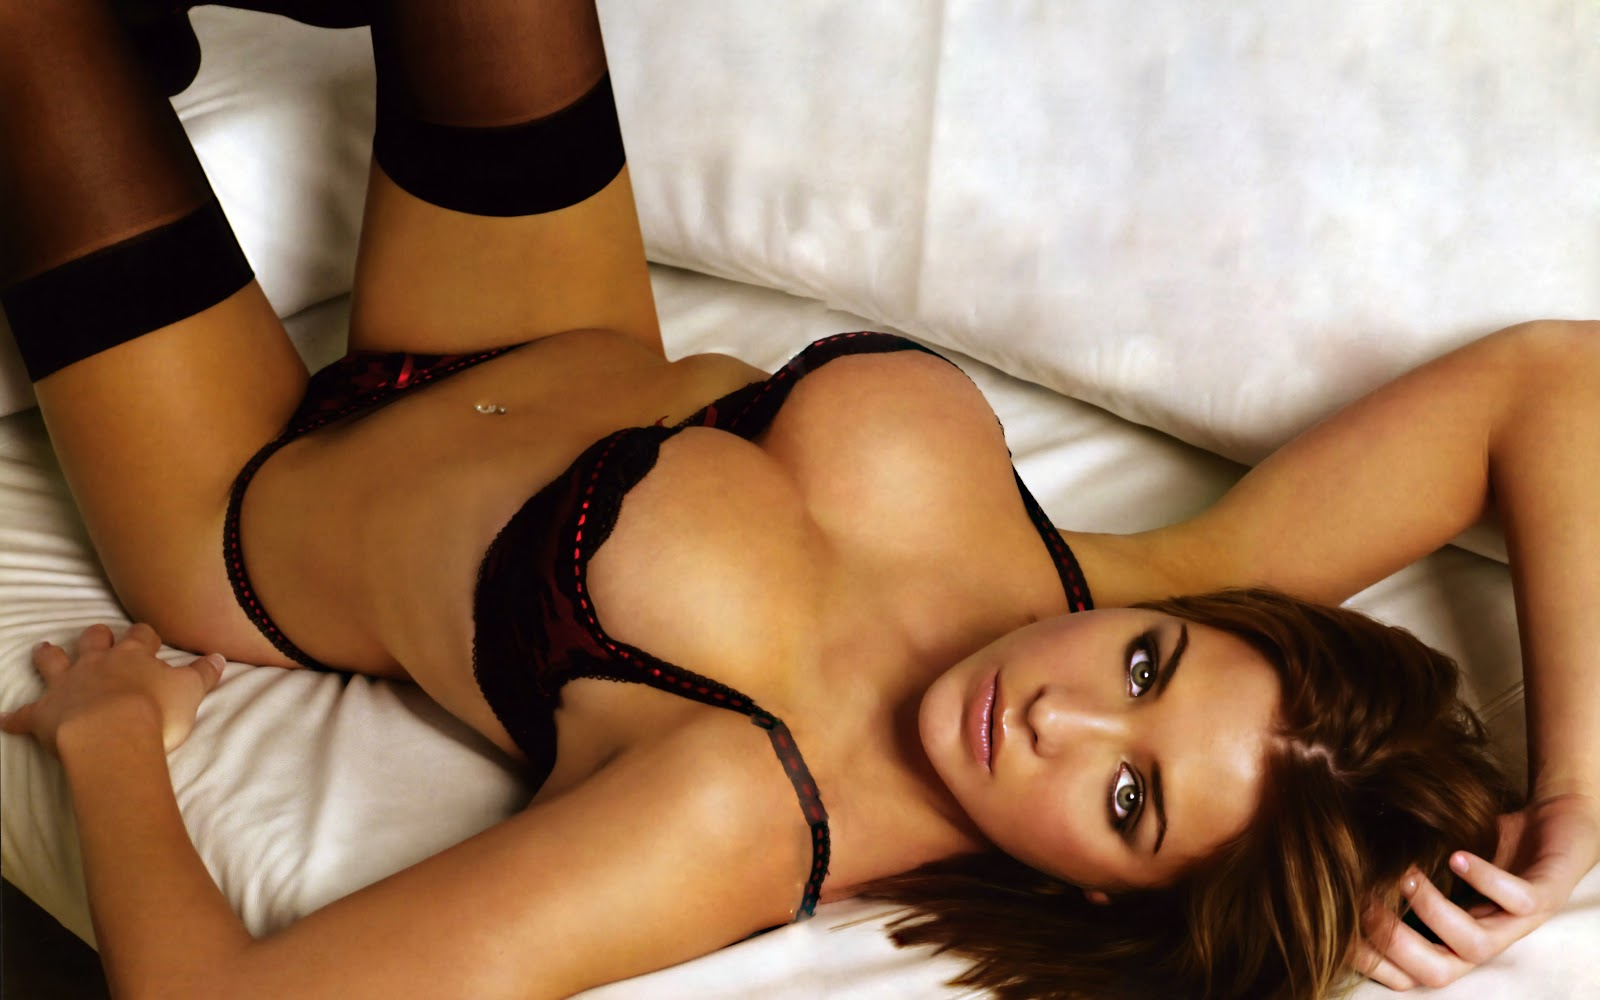 Hot Sexy Girl On Bed